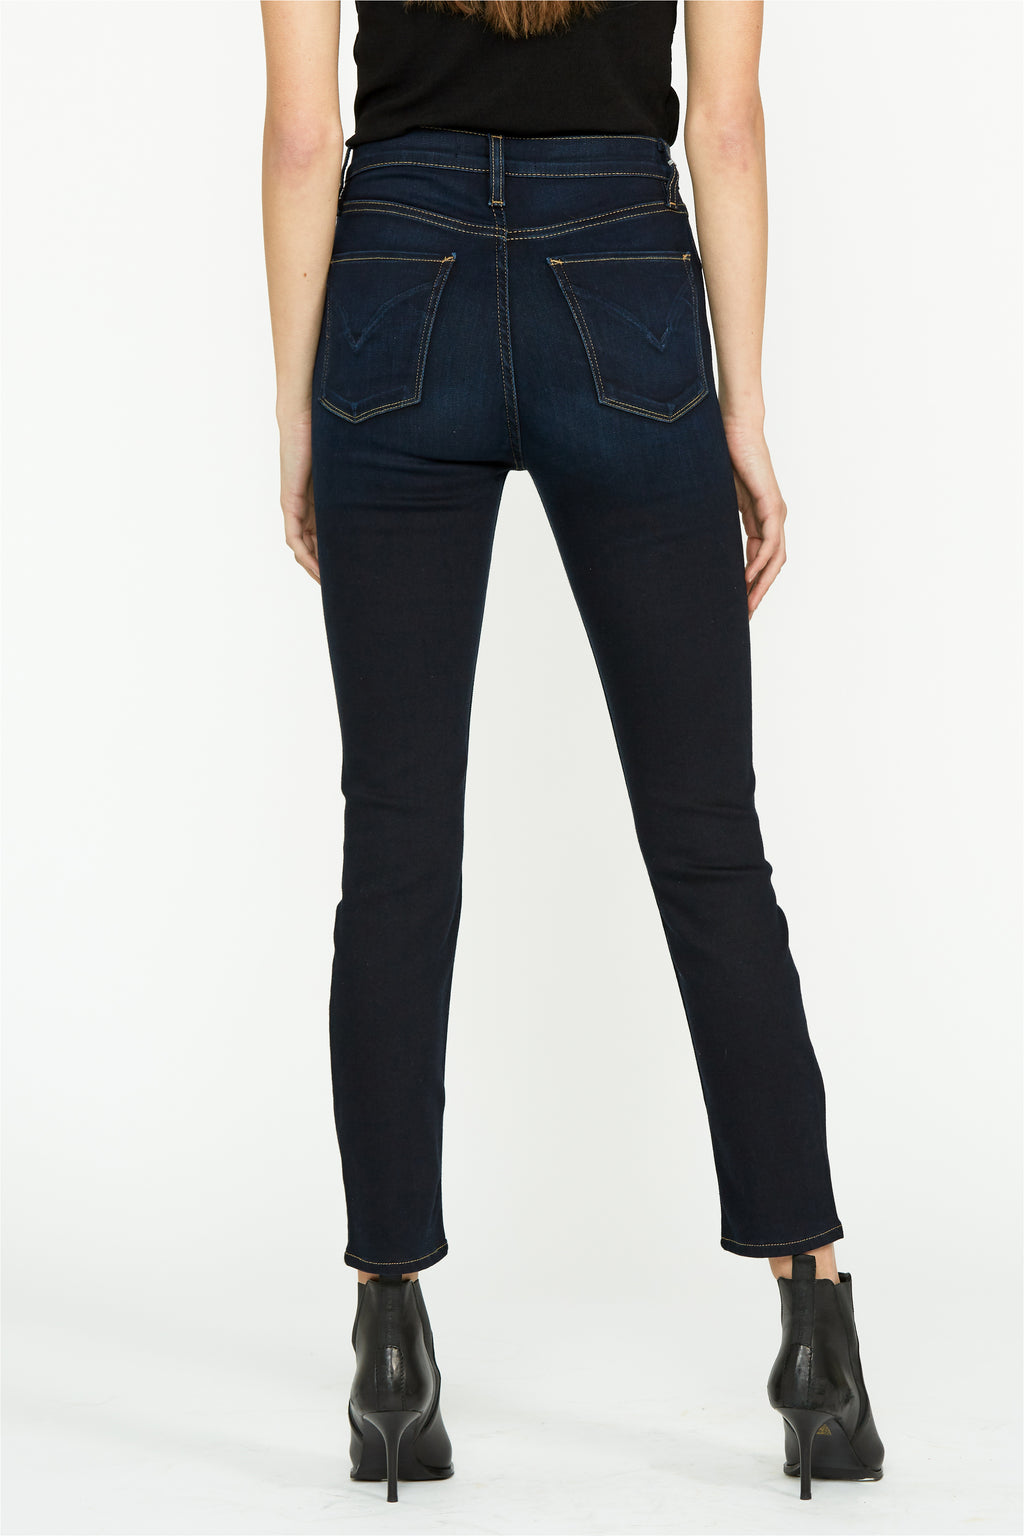 Holly High-Rise Skinny Jean - hudsonjeans